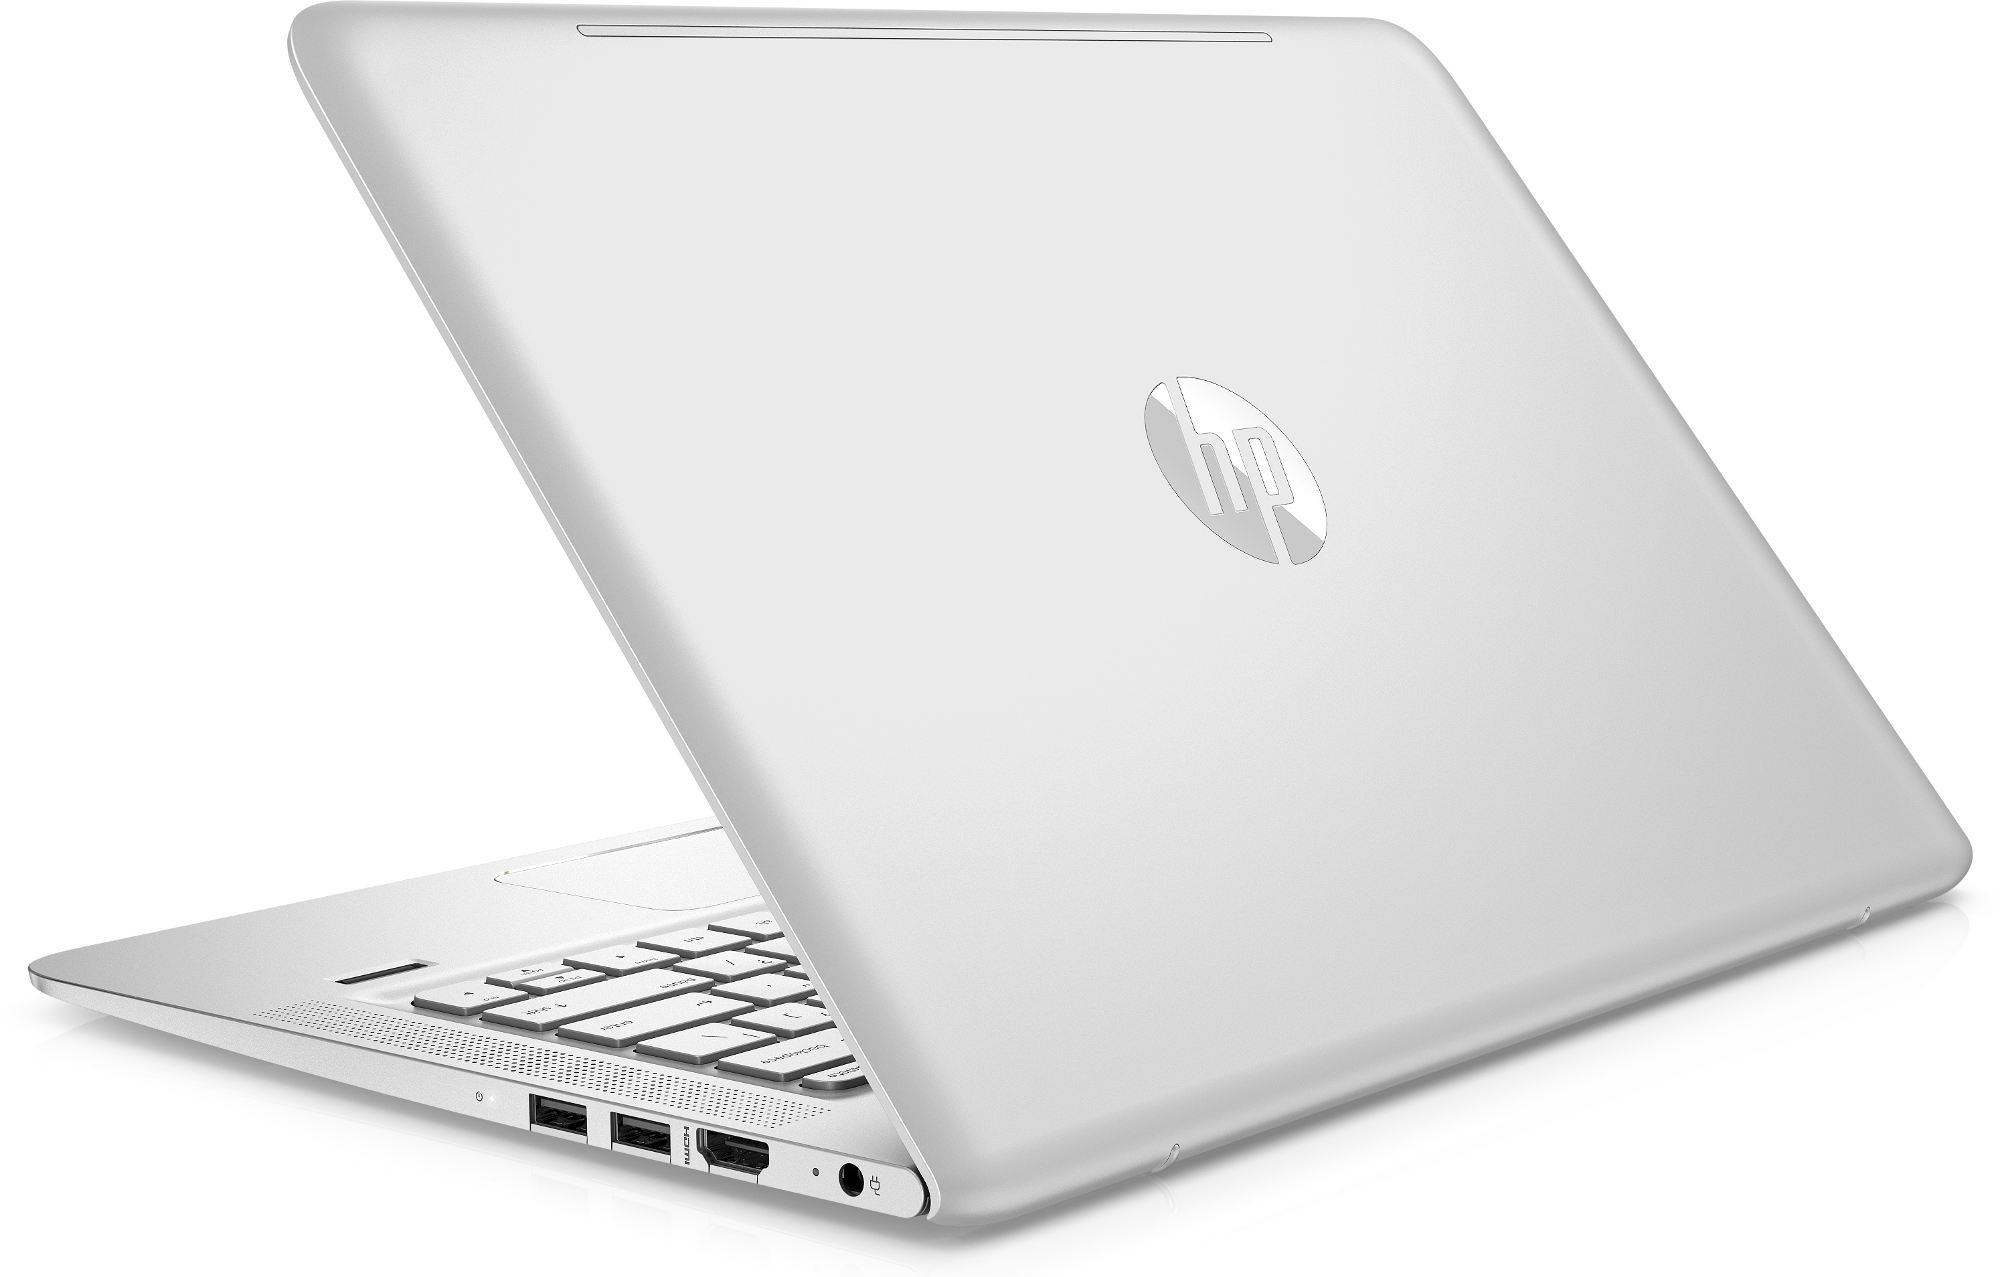 HEWLETT PACKARD - ENVY 13-D 002